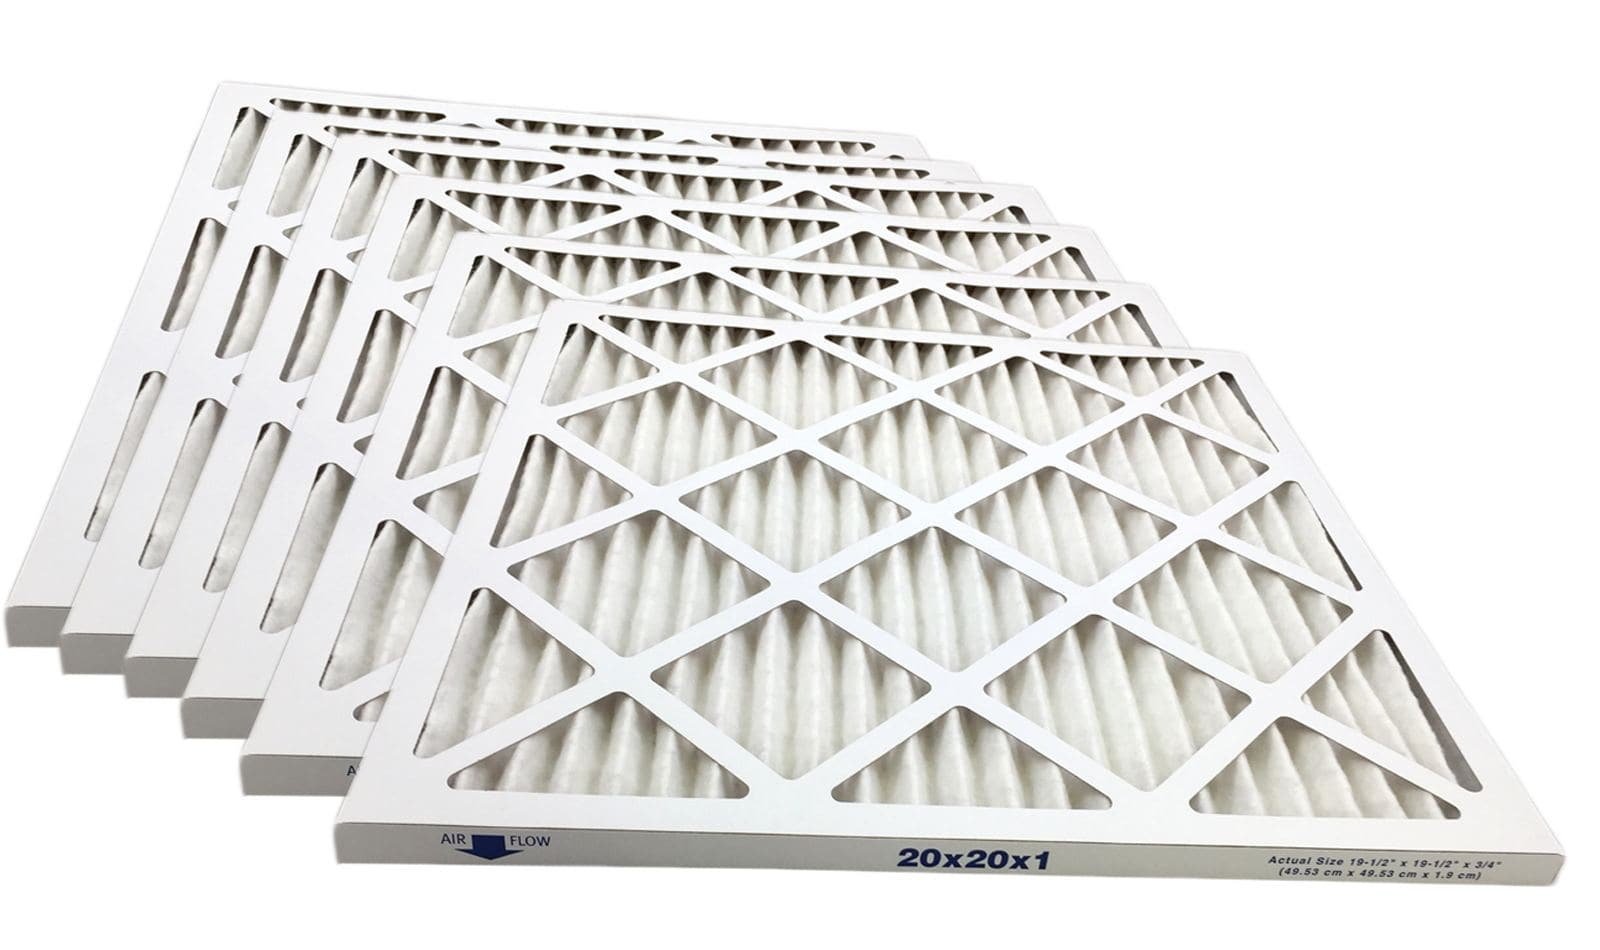 20x20x1 Merv 8 Pleated Air Filter - Case of 6 by Atomic